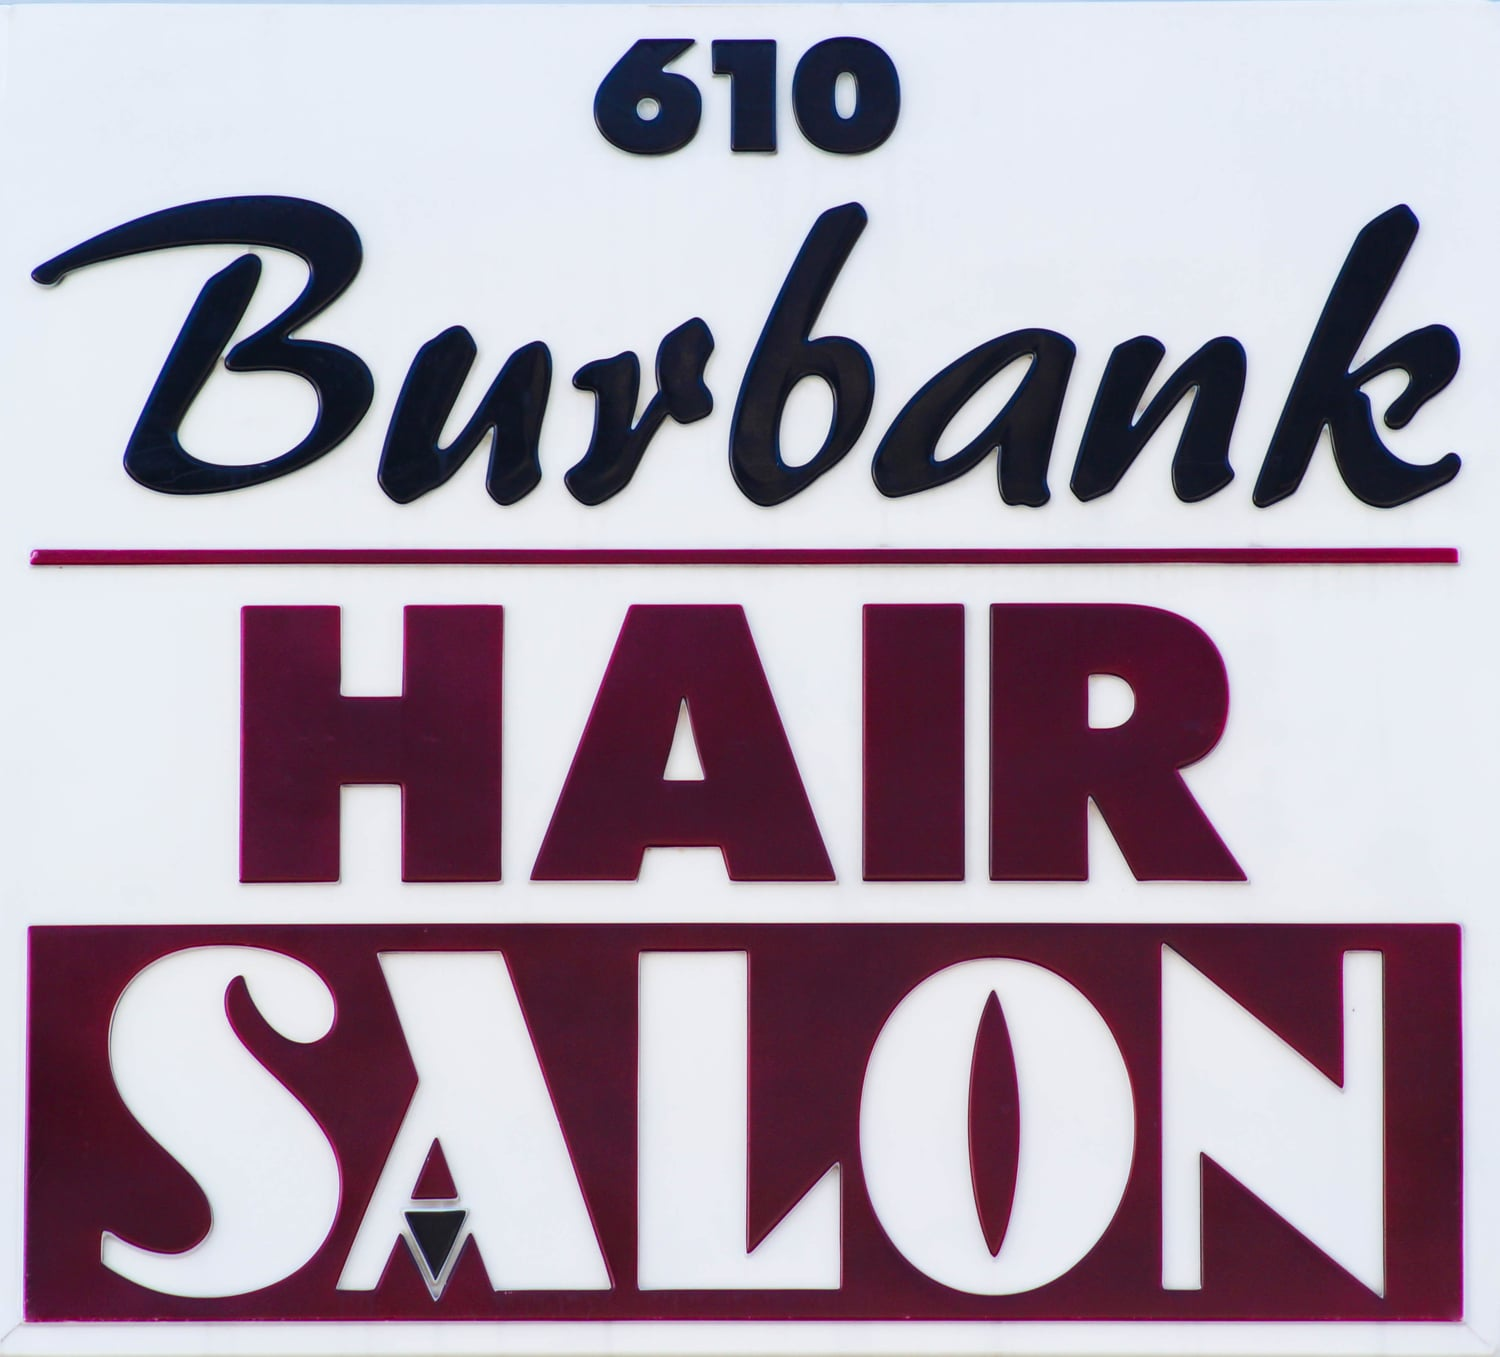 610 Burbank Hair Salon